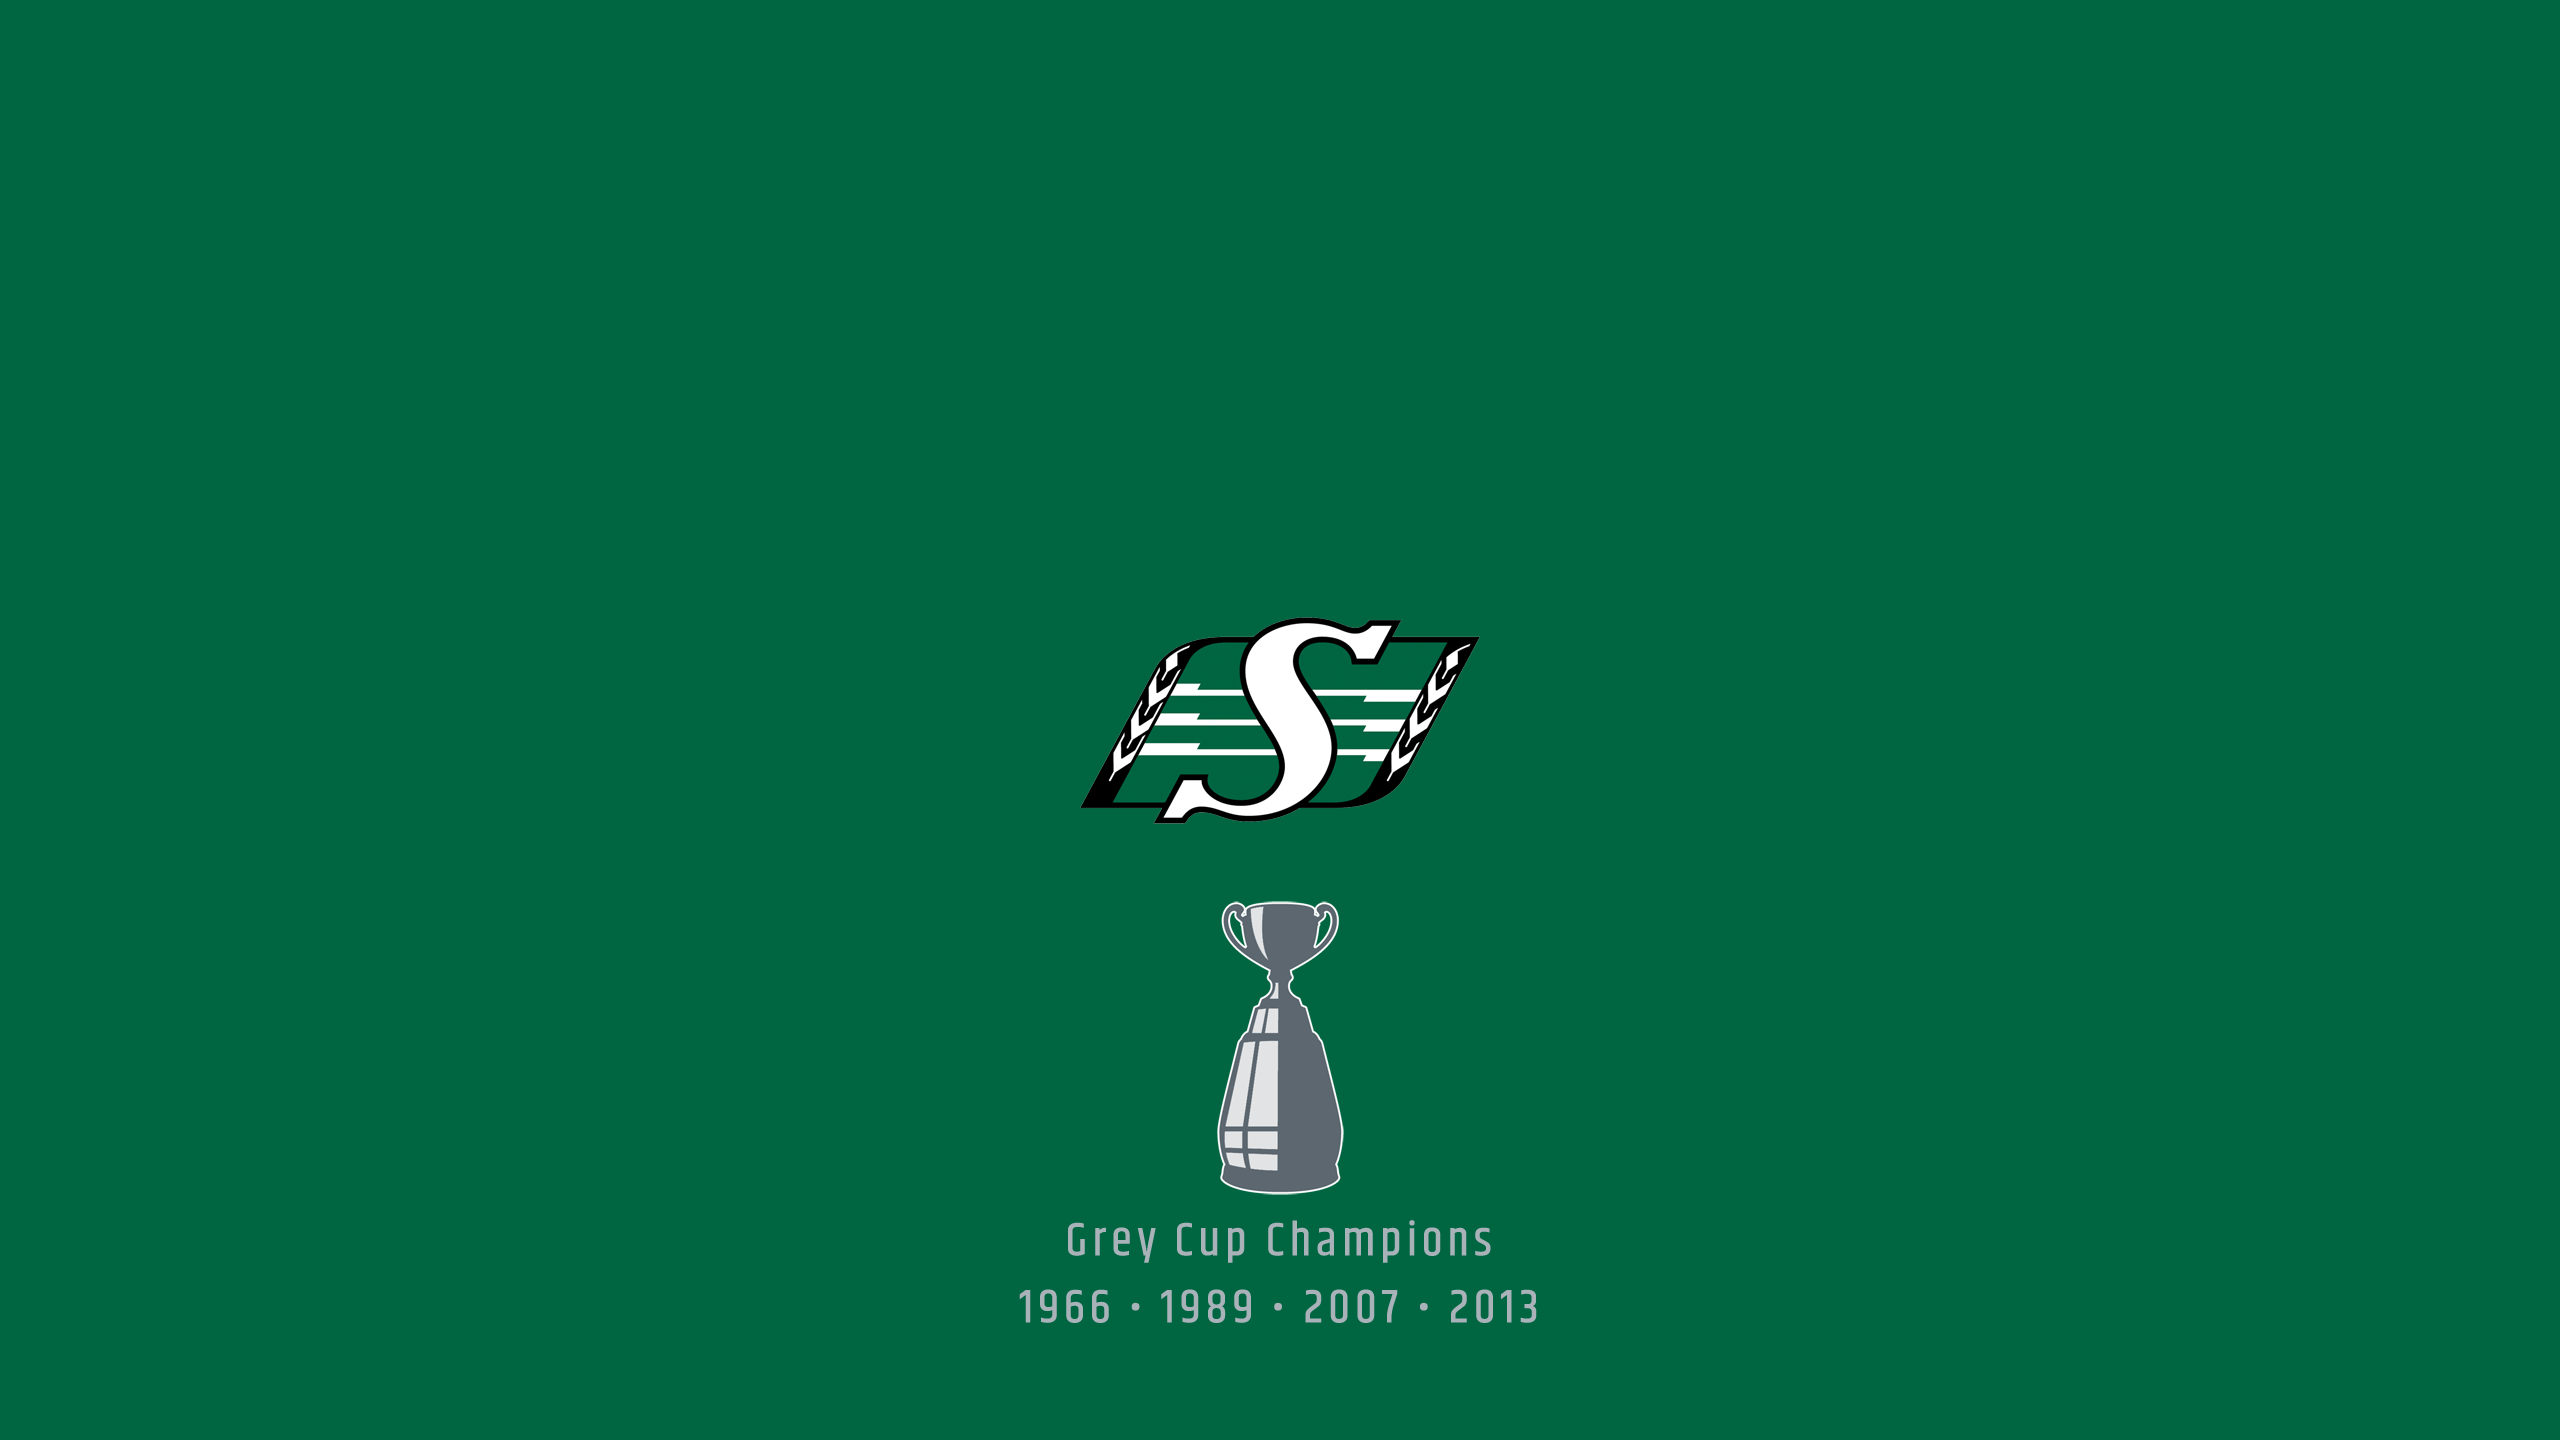 Saskatchewan Roughriders - CFL Champs